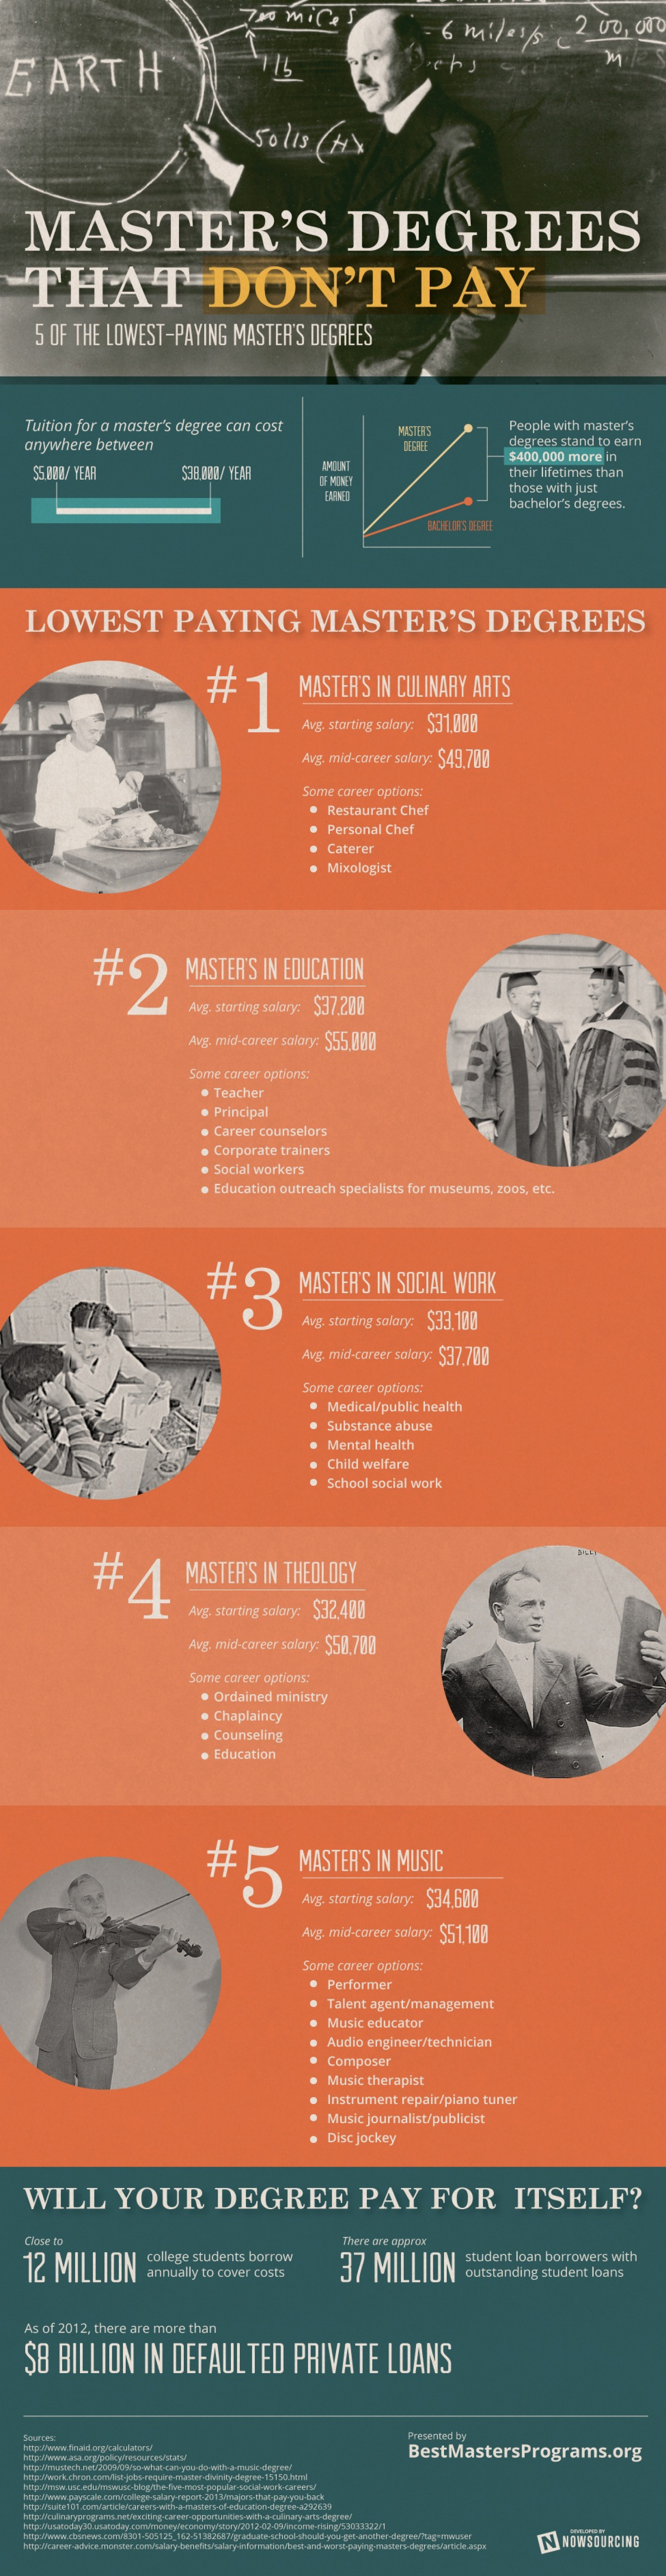 Master's Degrees that Don't Pay Infographic